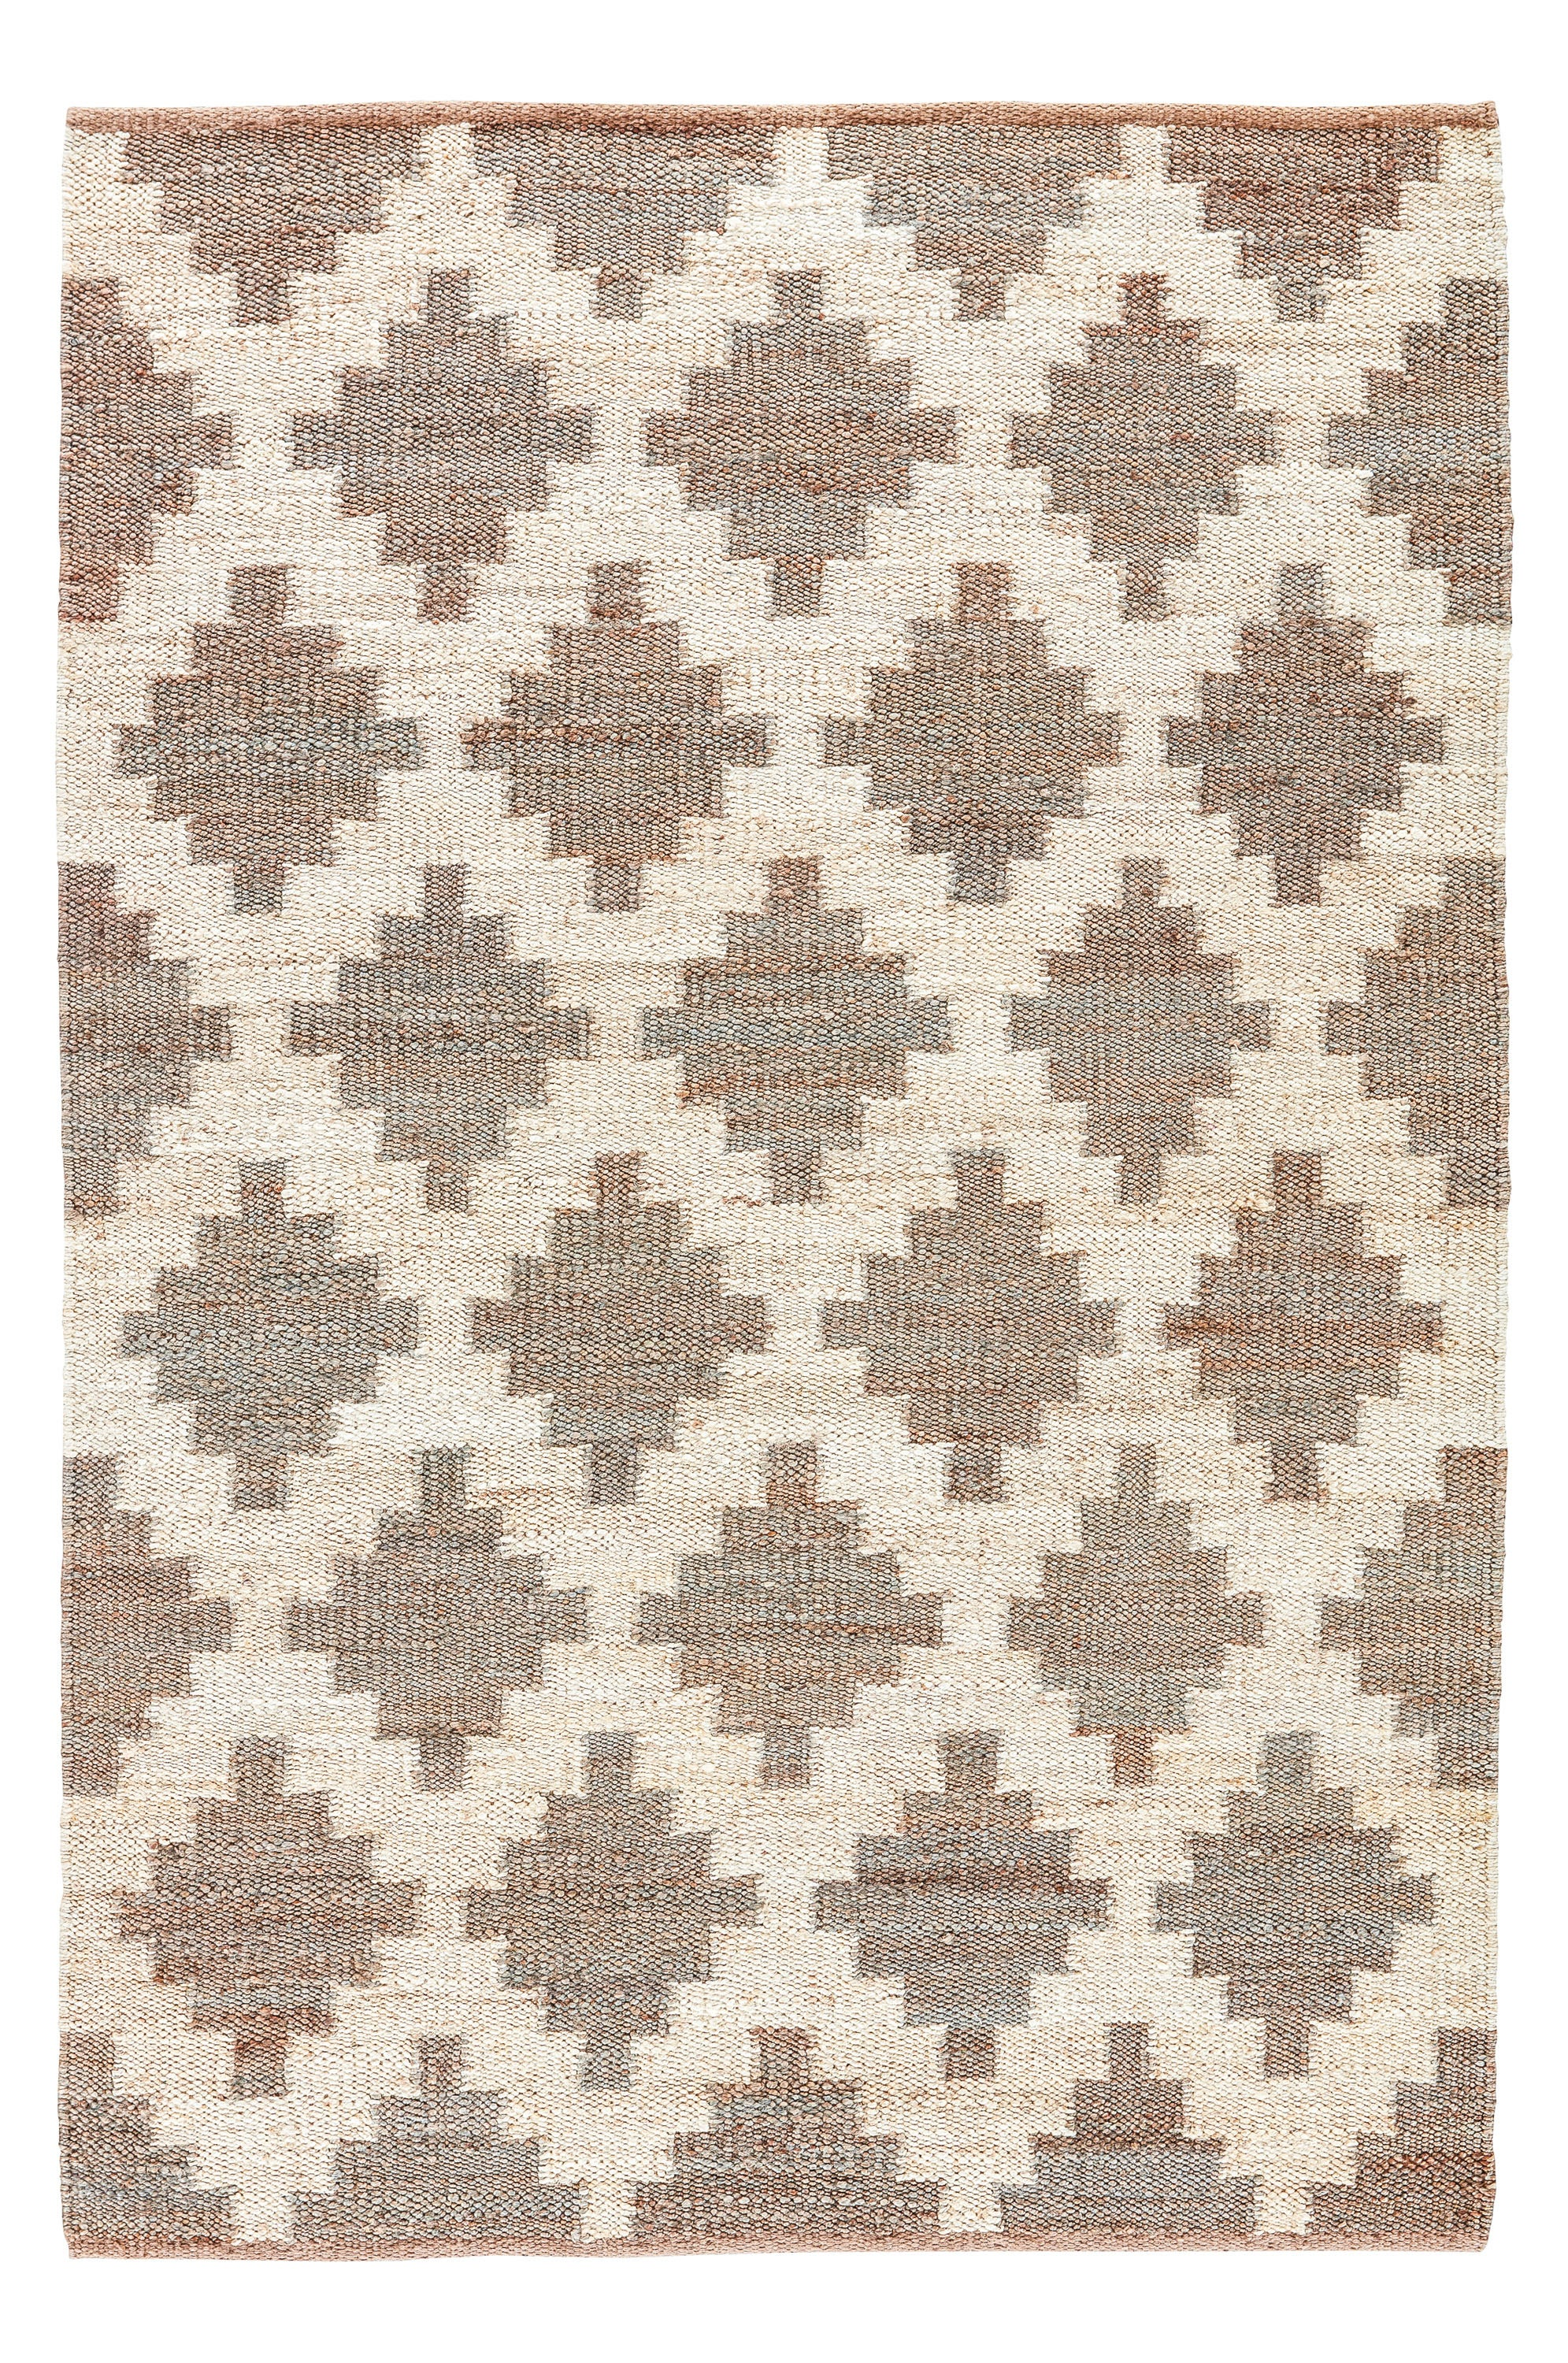 Rectangle Gray Trellis Dhurrie Jute & Natural Fibers Persian & Moroccan recommended for Kitchen, Bedroom, Bathroom, Dining Room, Office, Hallway, Living Room